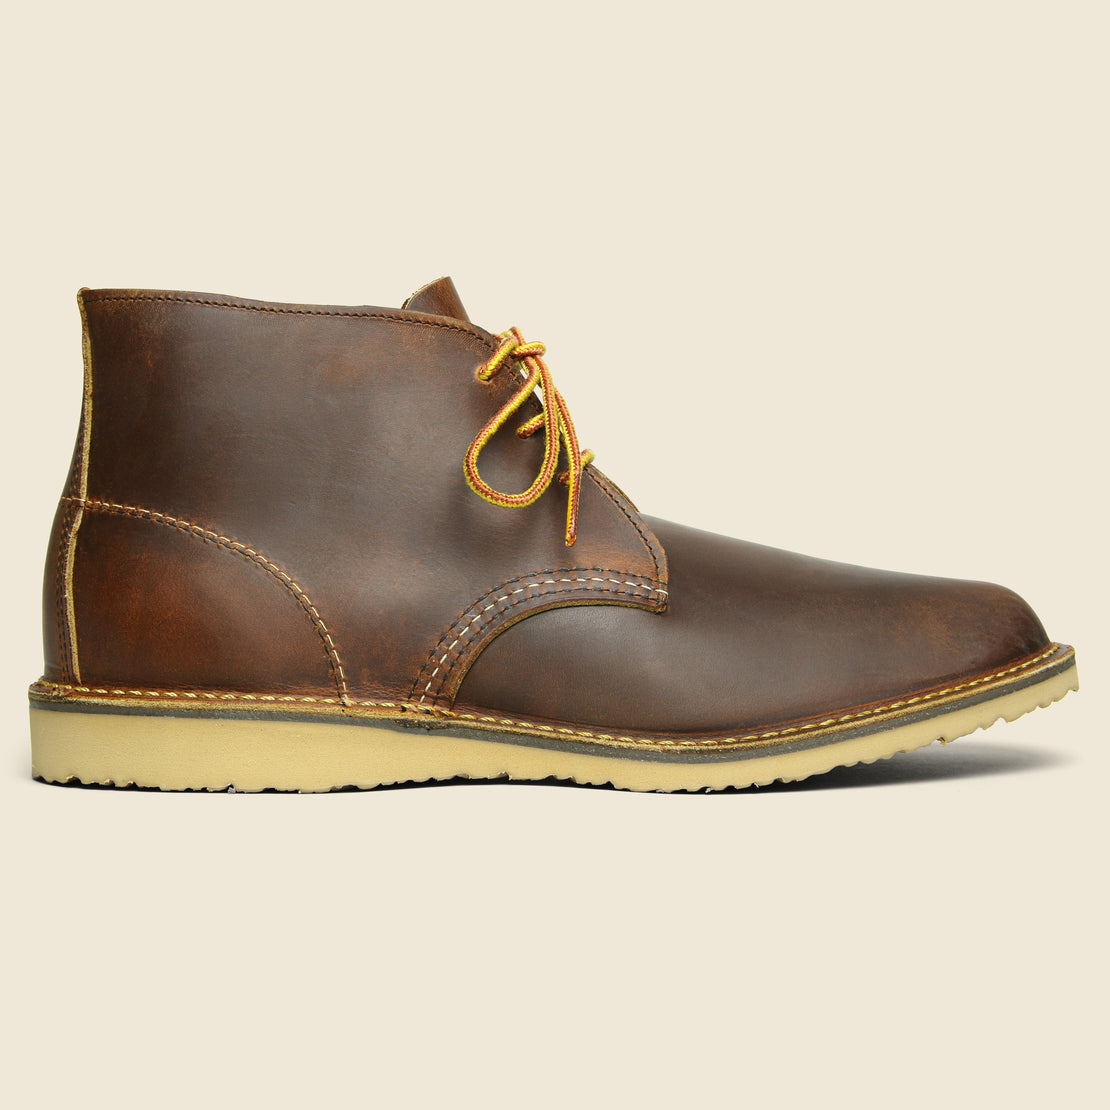 Red Wing Weekender Chukka No. 3322 - Copper Rough & Tough